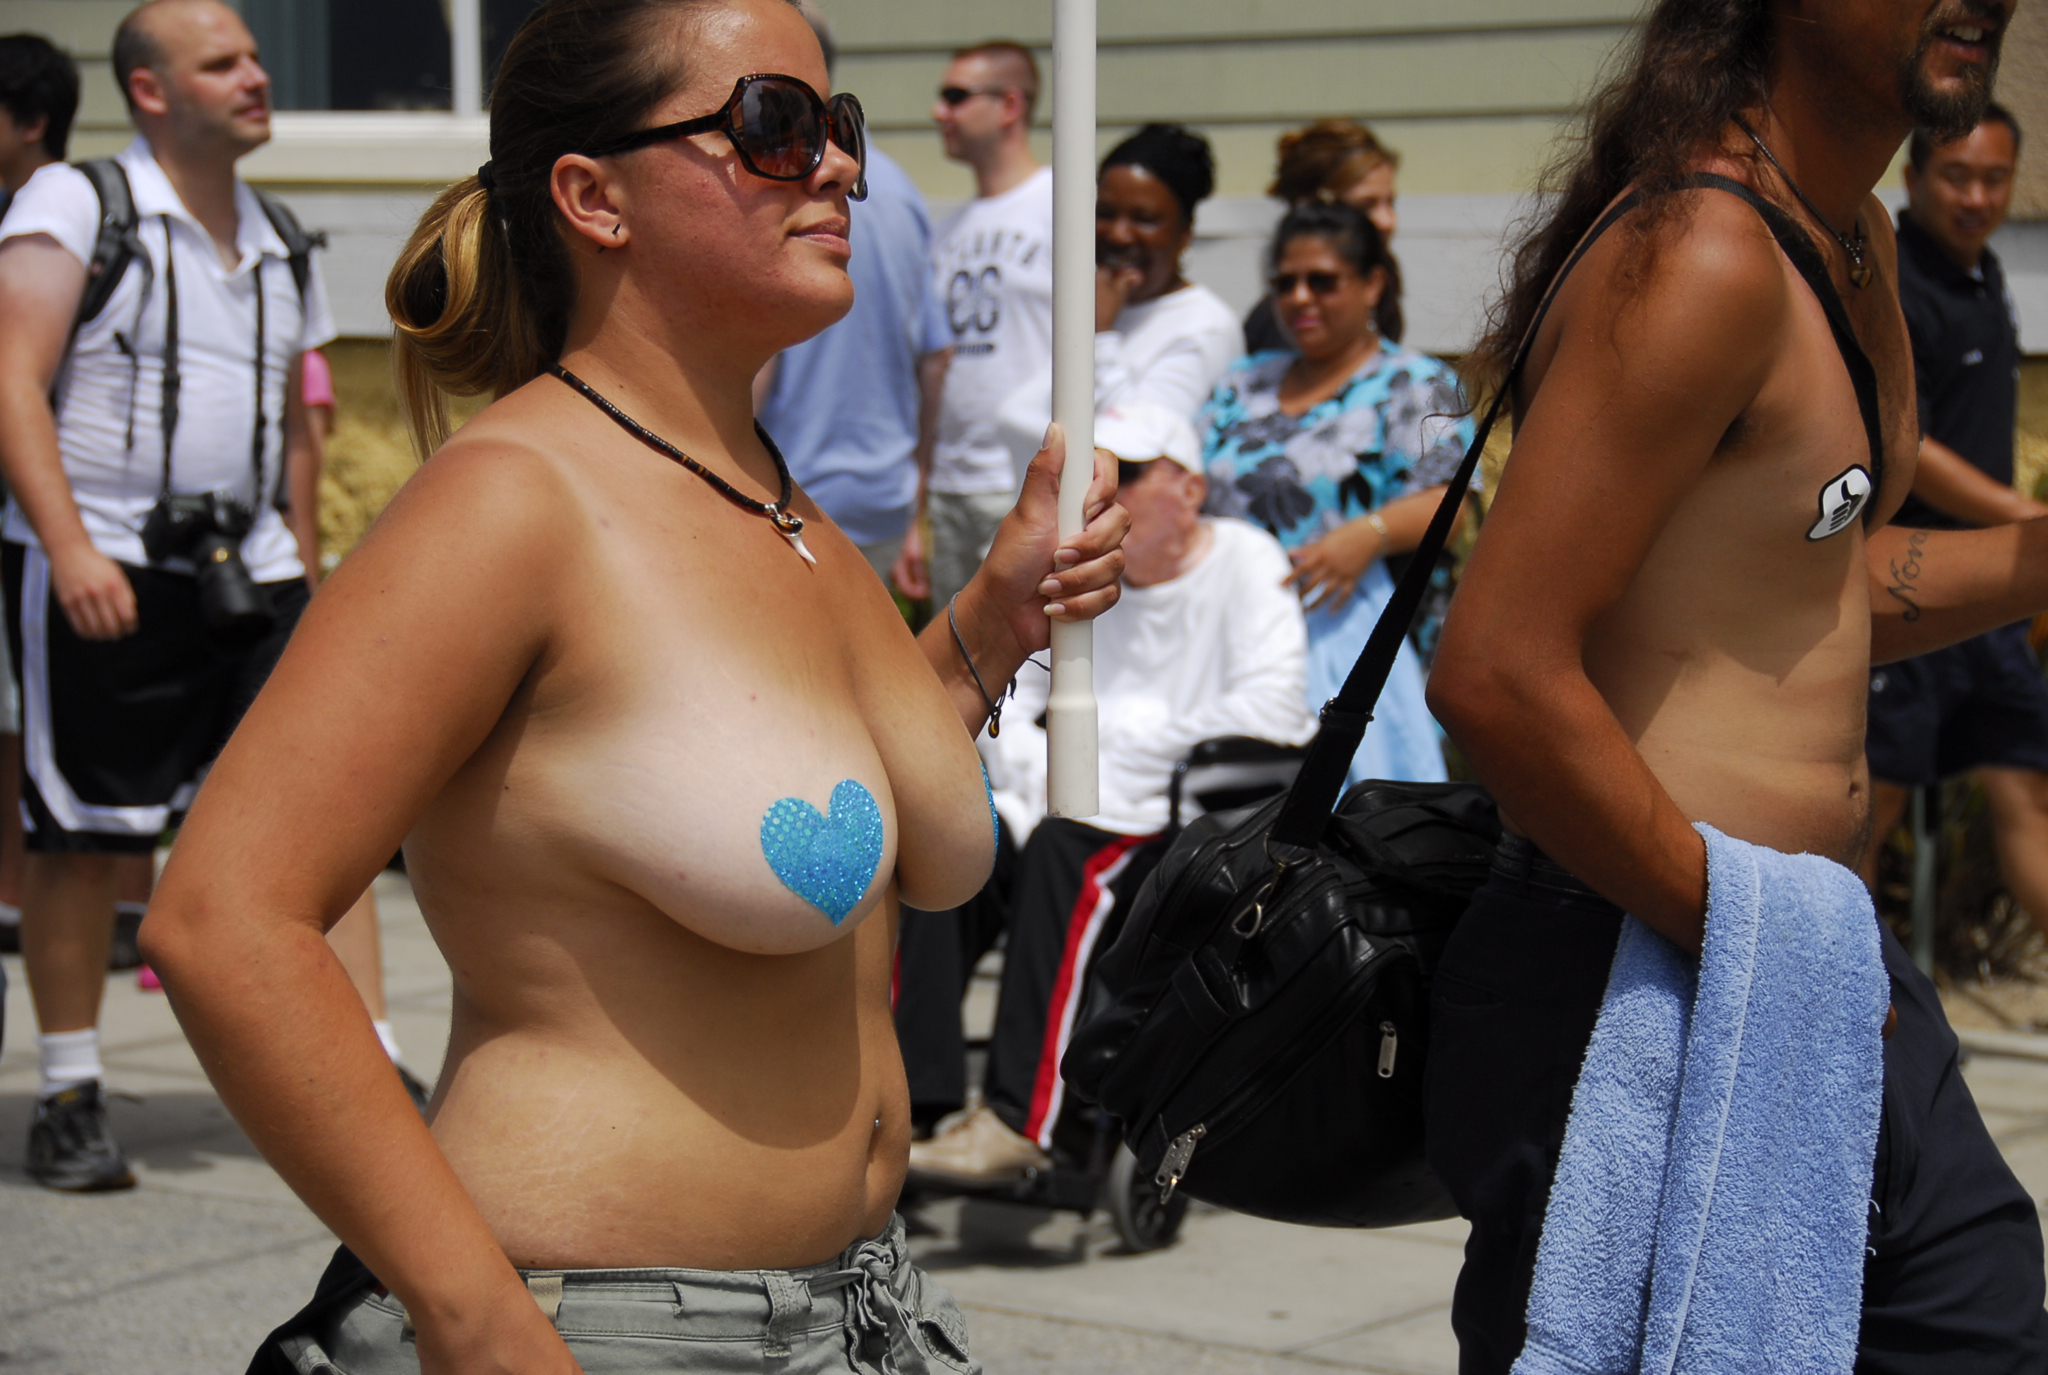 Women are squishing their boobs into hearts on social media